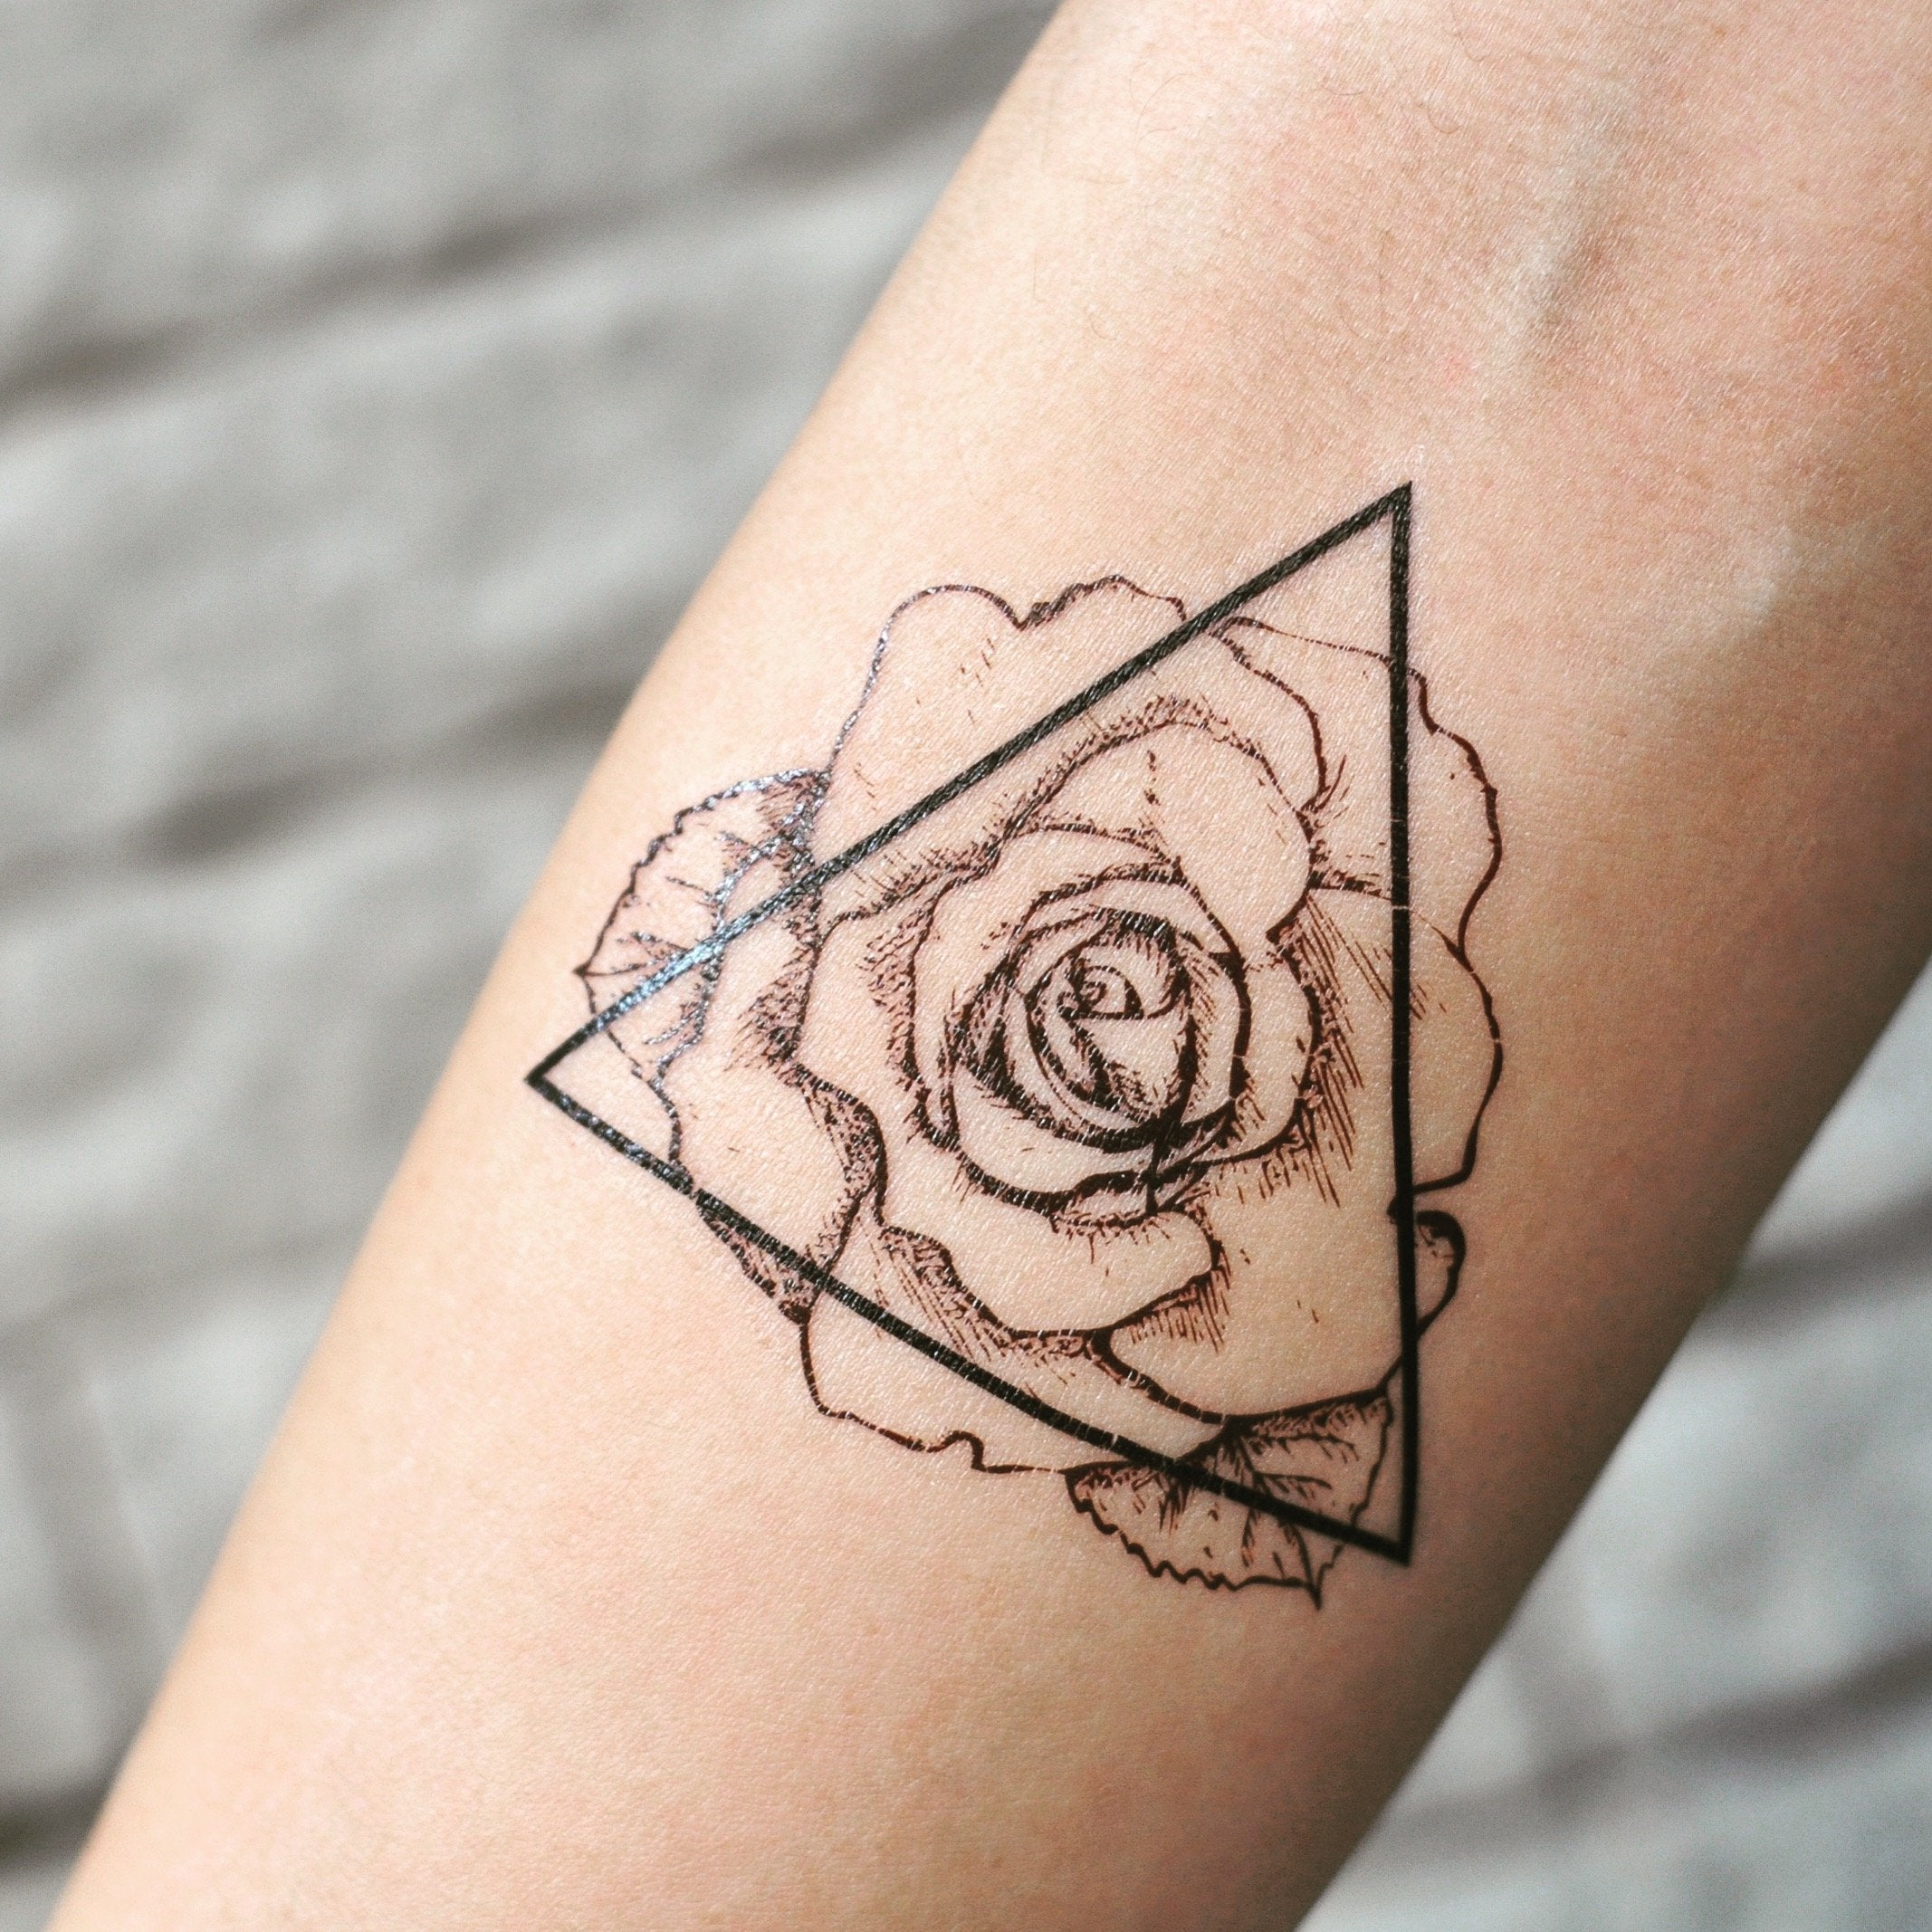 Triangle Rose Outline Temporary Tattoo Sticker - OhMyTat